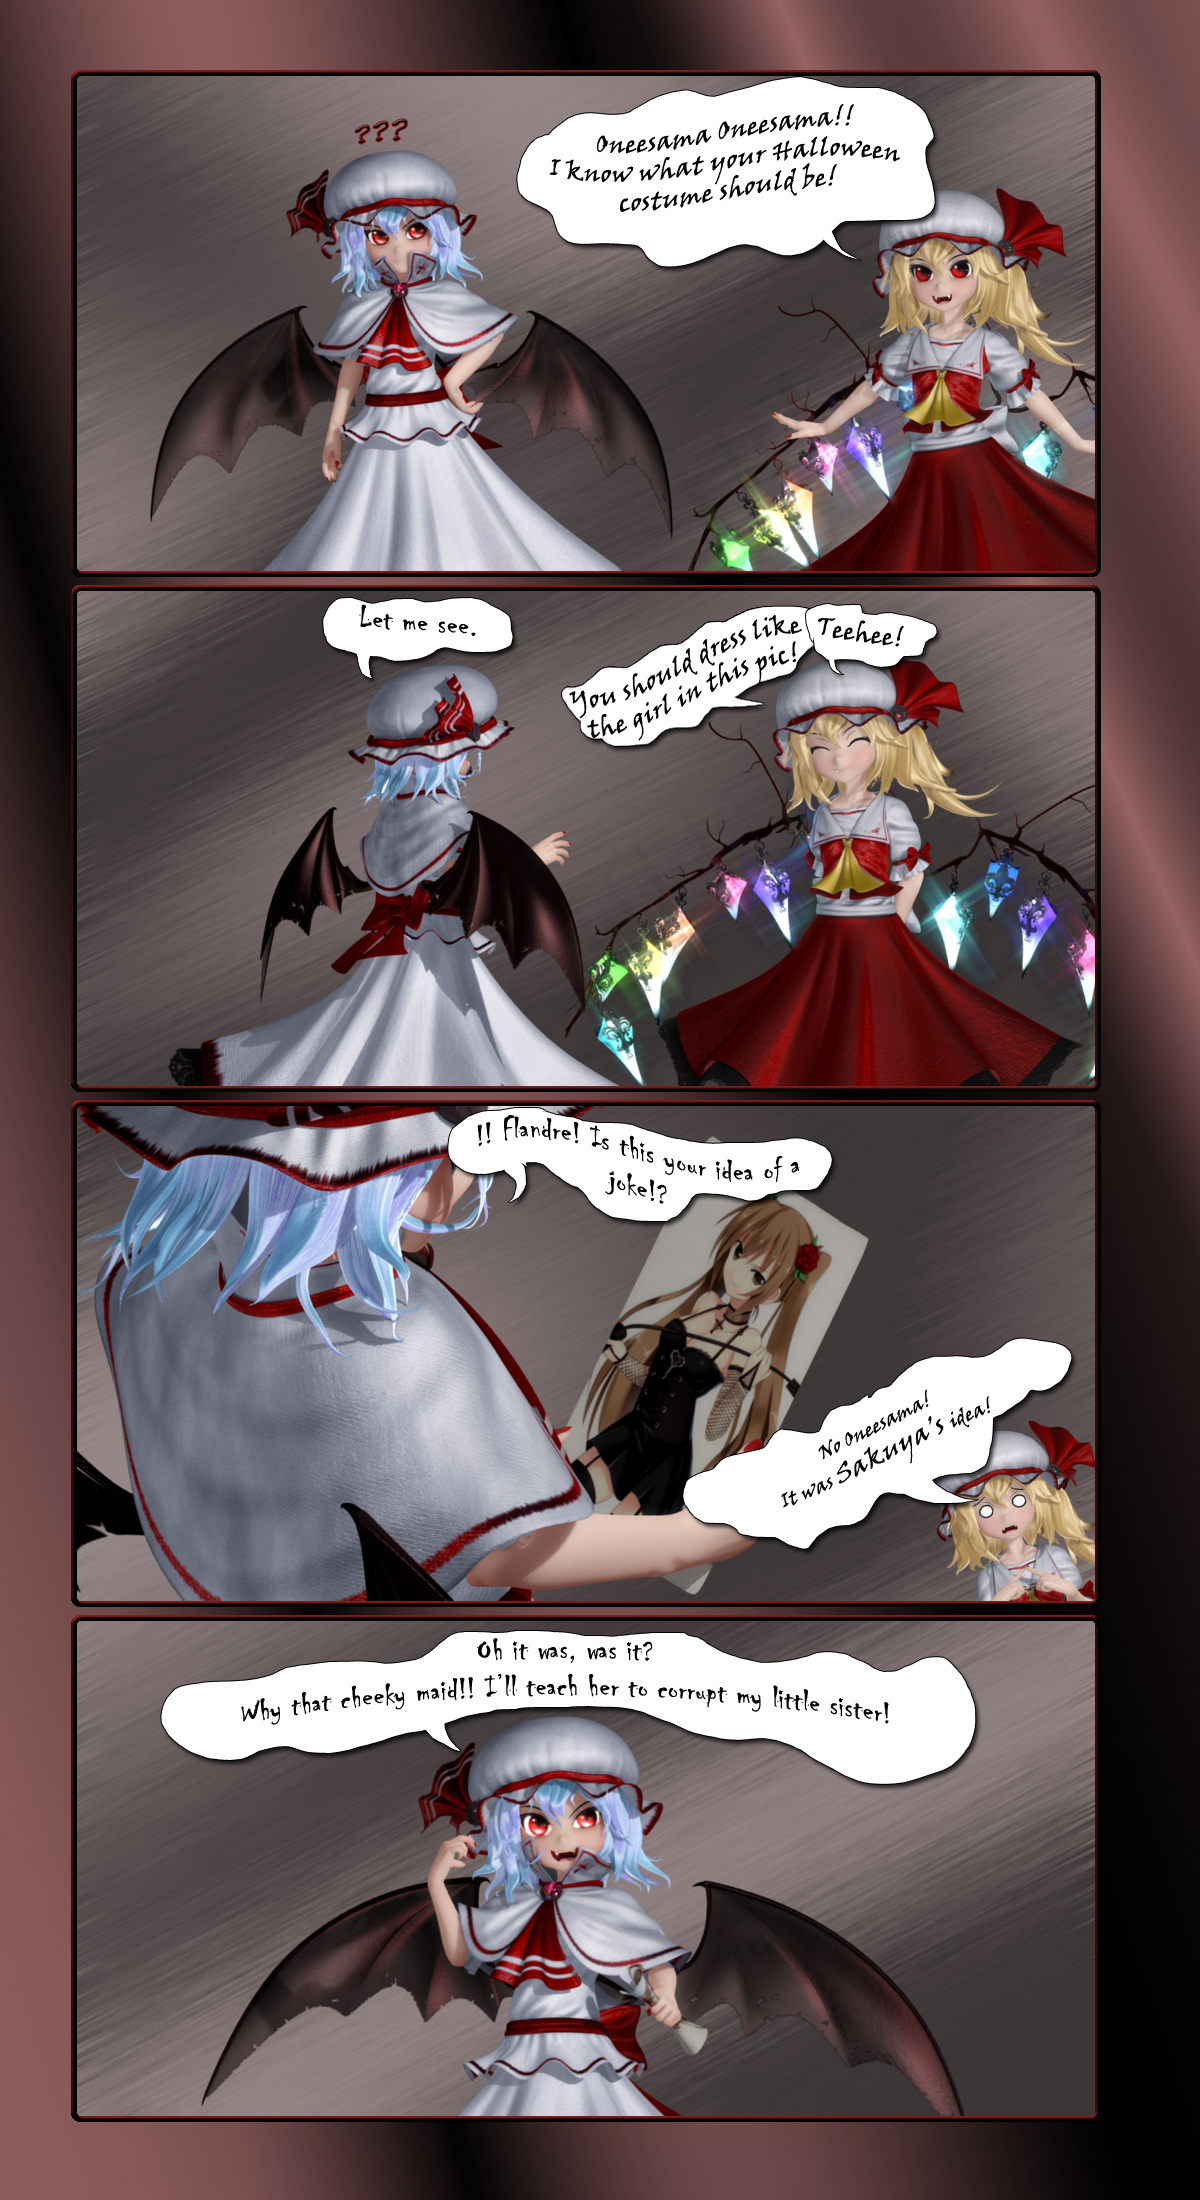 Remilia's Halloween 4Koma by Primantis